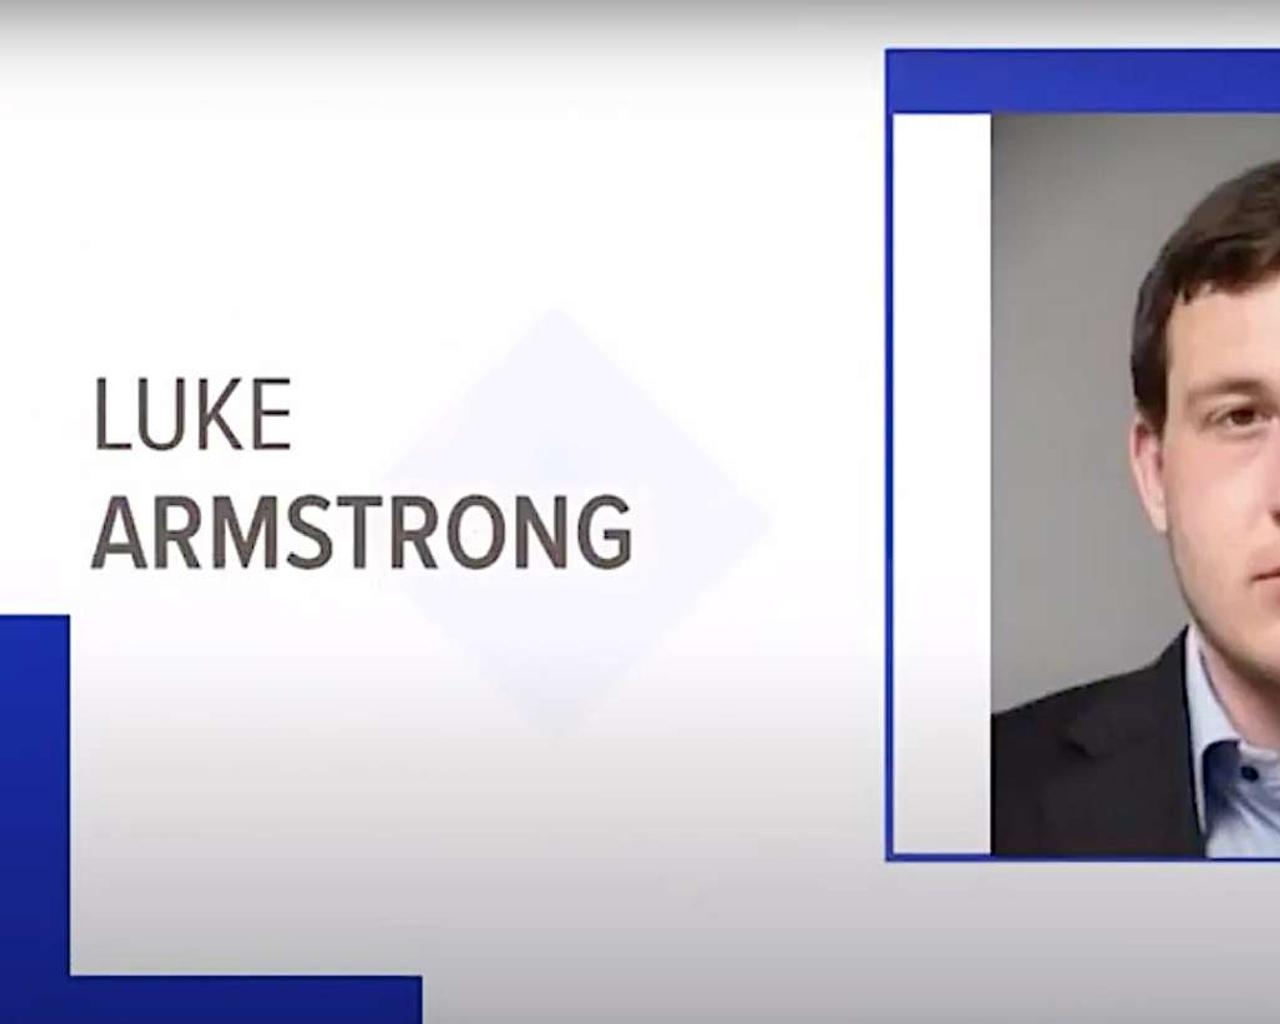 Lance Armstrong's son has been arrested for sexually assaulting a 16-year-old girl